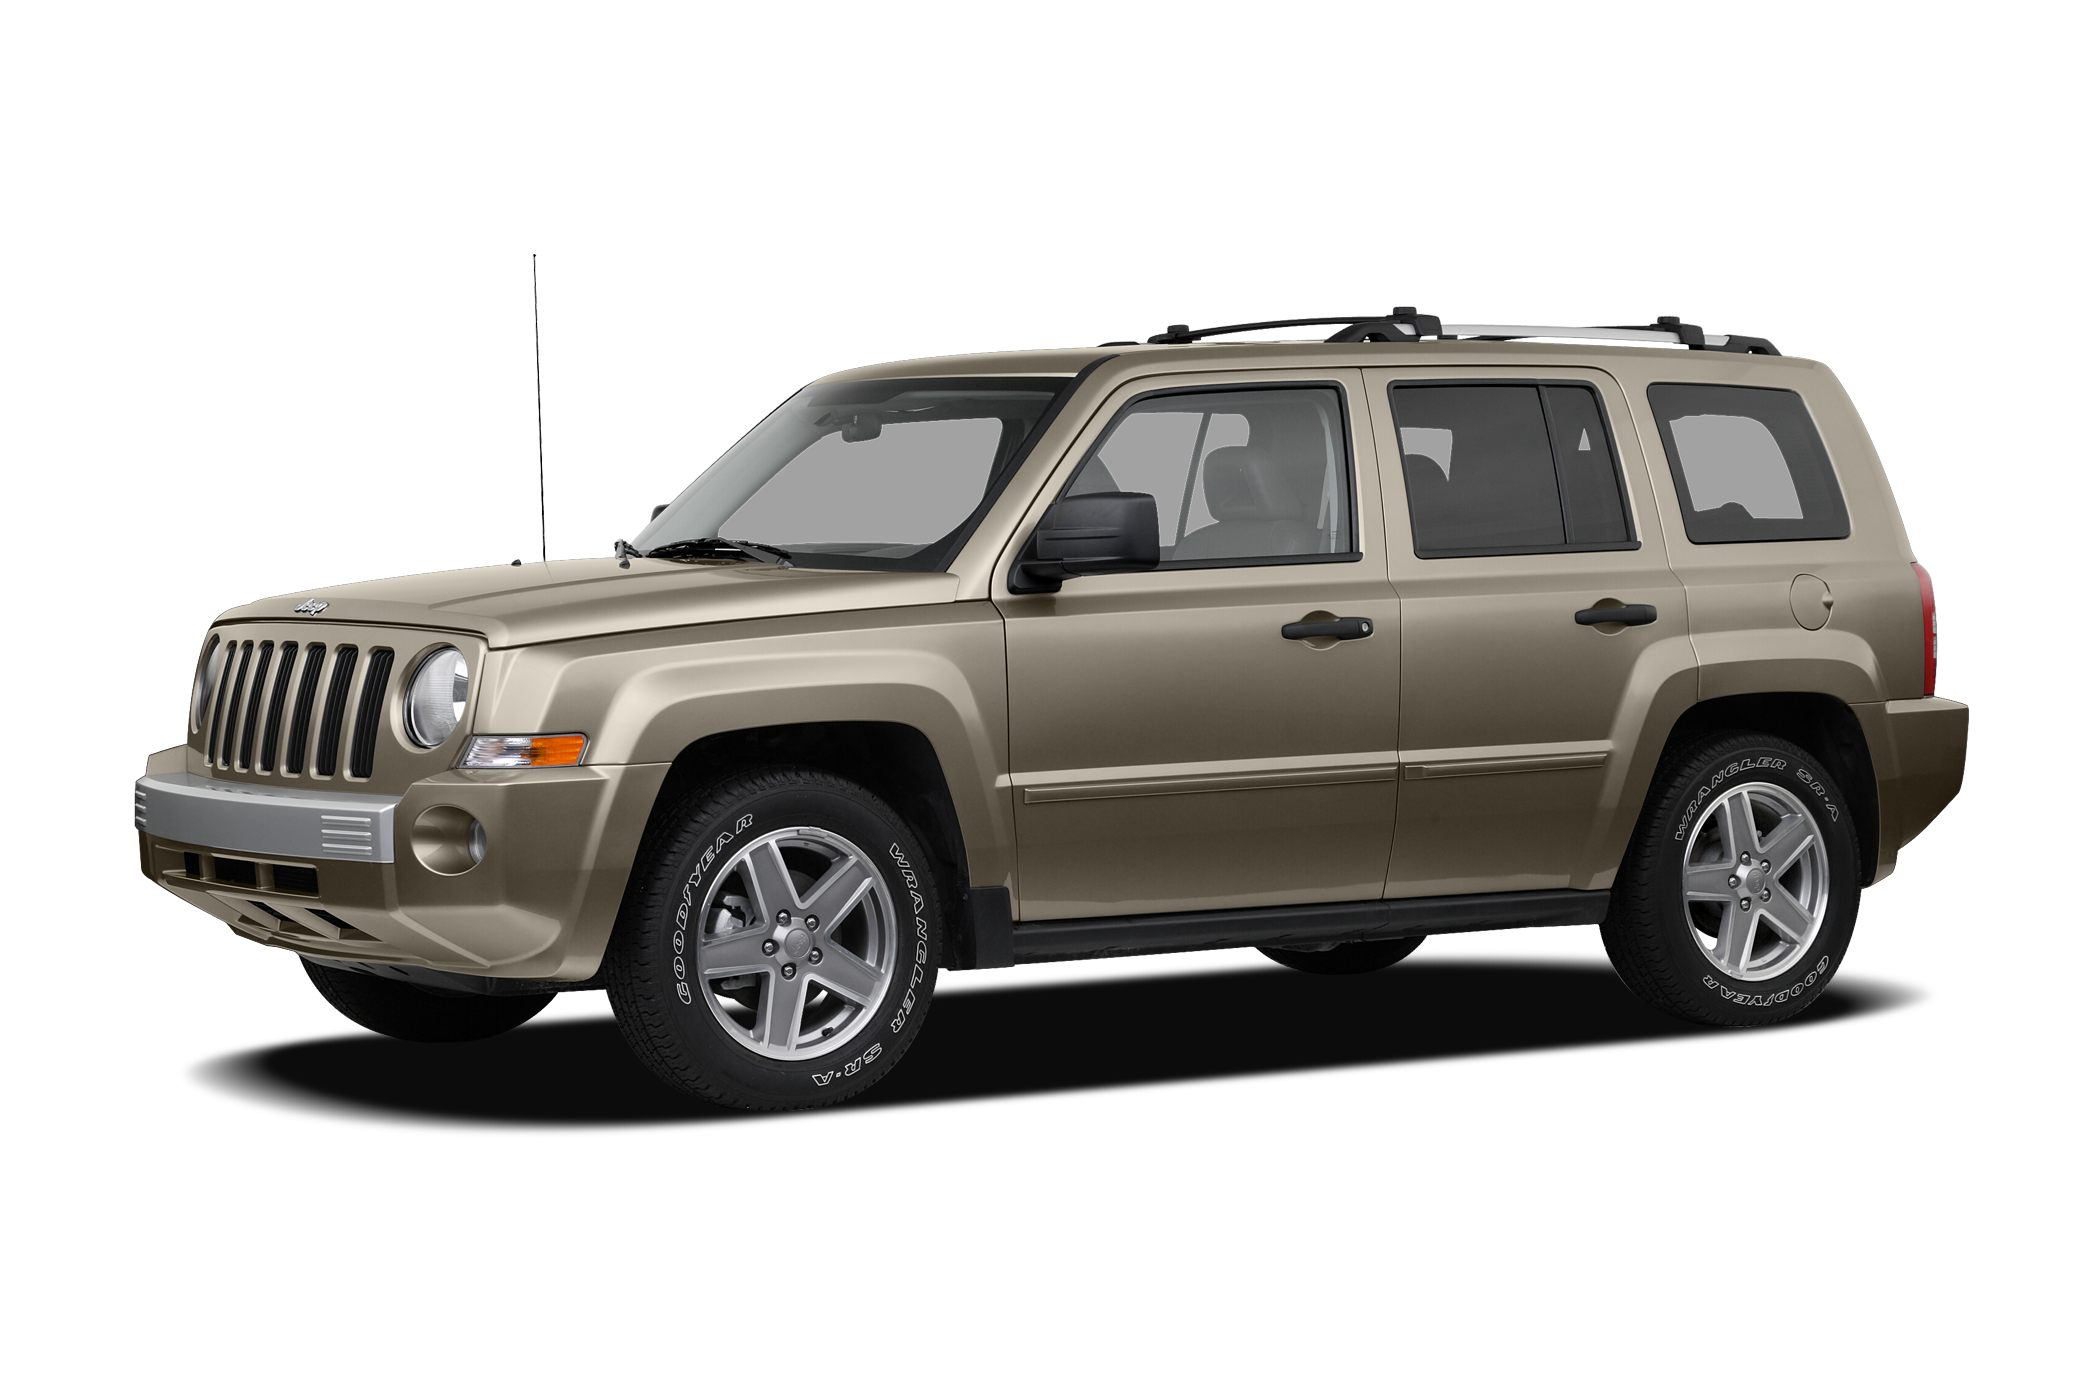 2008 Jeep Patriot Sport JUST PURCHASED- PICTURES SOON YES ONLY 90K MILES  NO ACCIDENTS  S